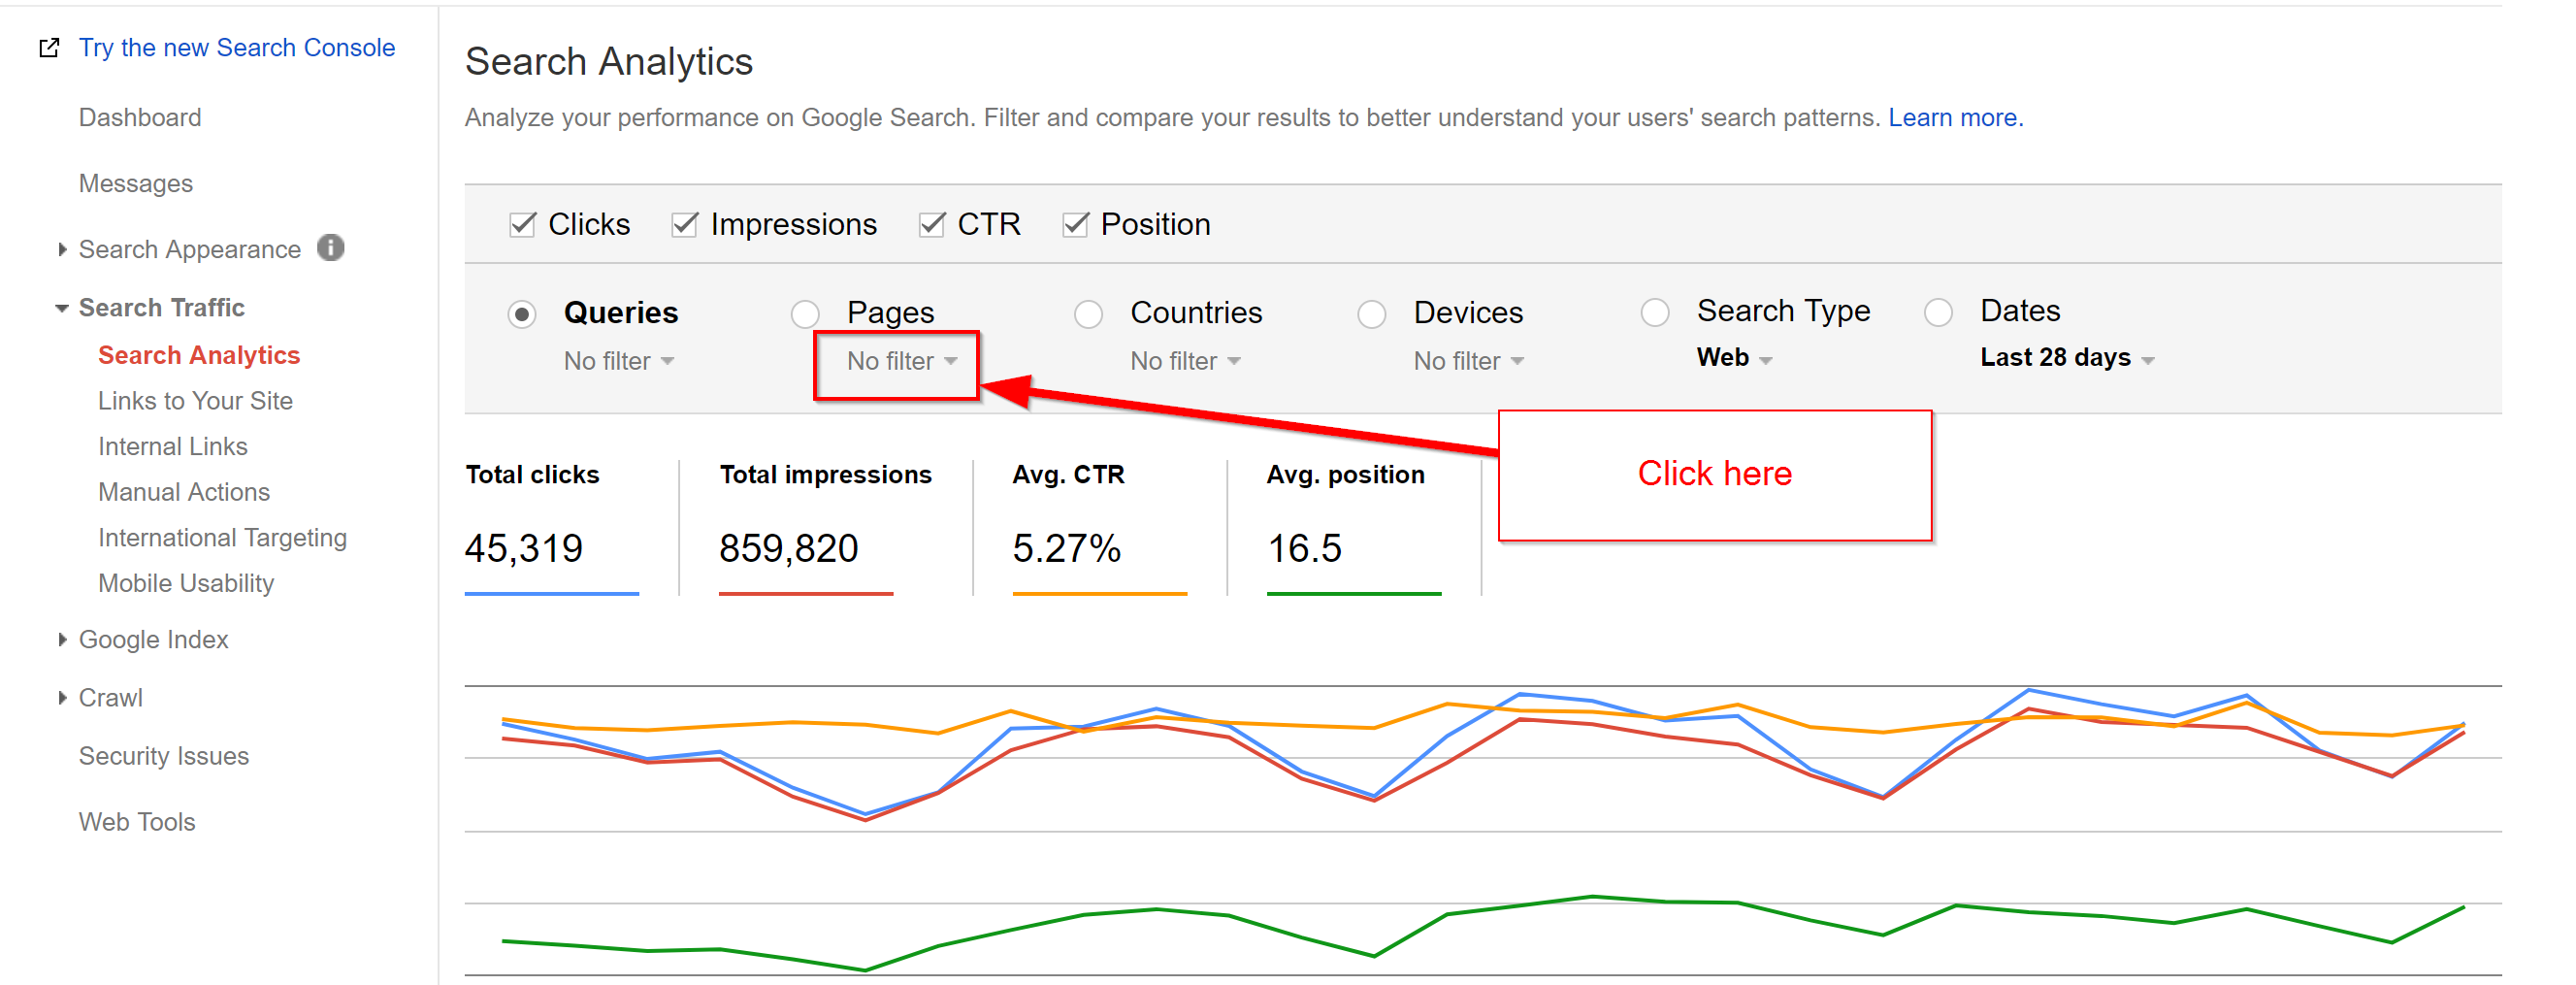 Search Console 1 . Ranking for more keywords, seo traffic